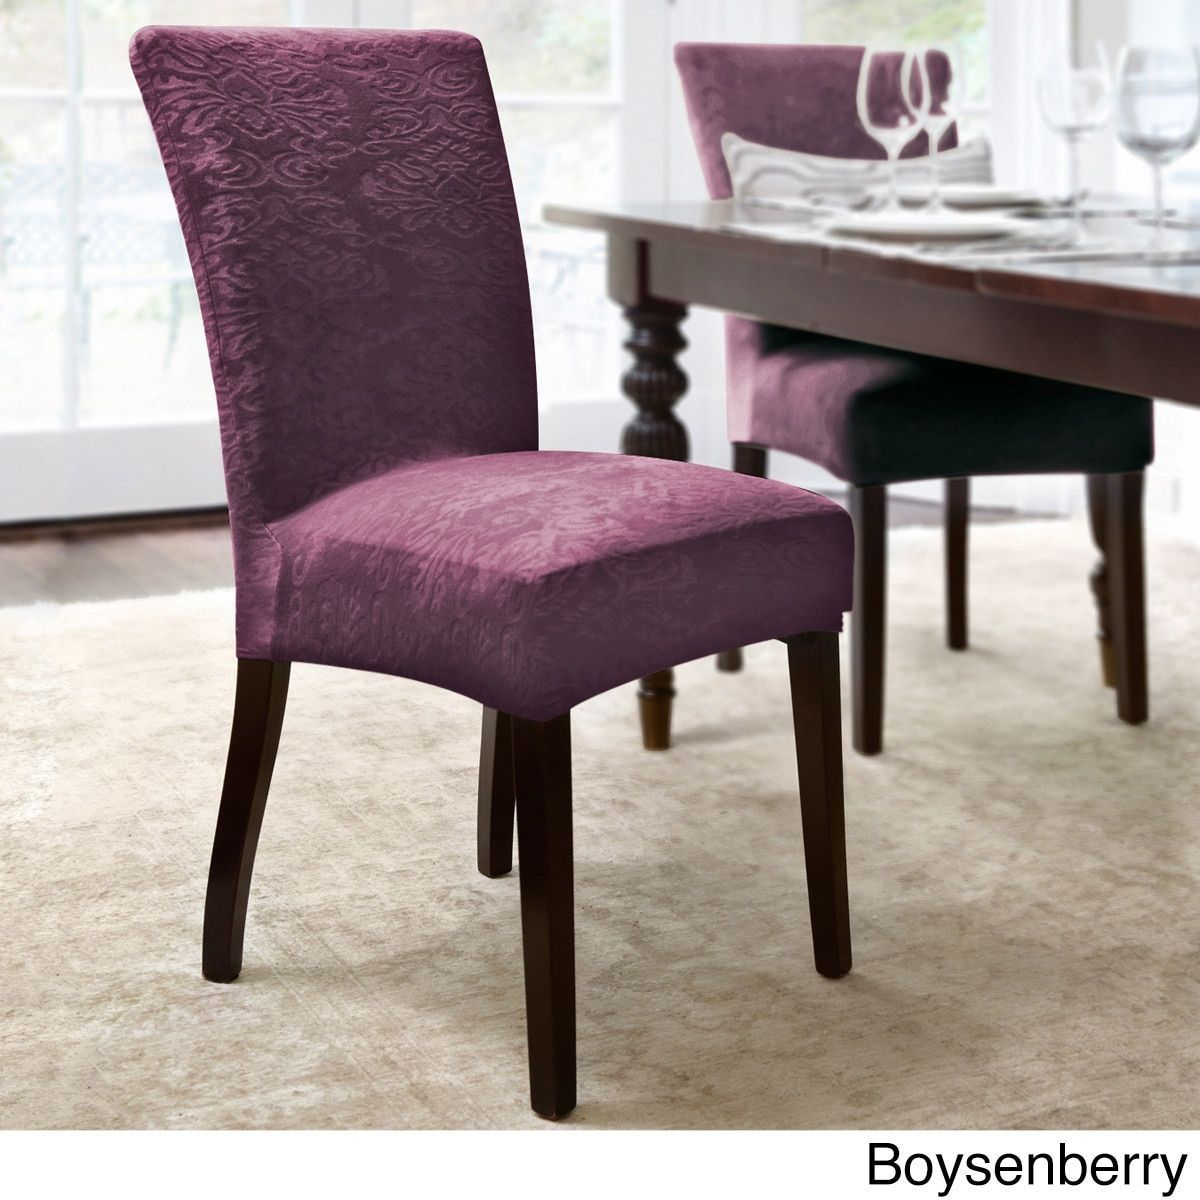 Dining Chair Covers Velvet Wedding Loughborough Quickcover Damask Embossed Stretch 1 Piece Slipcover Boysenberry Purple Design